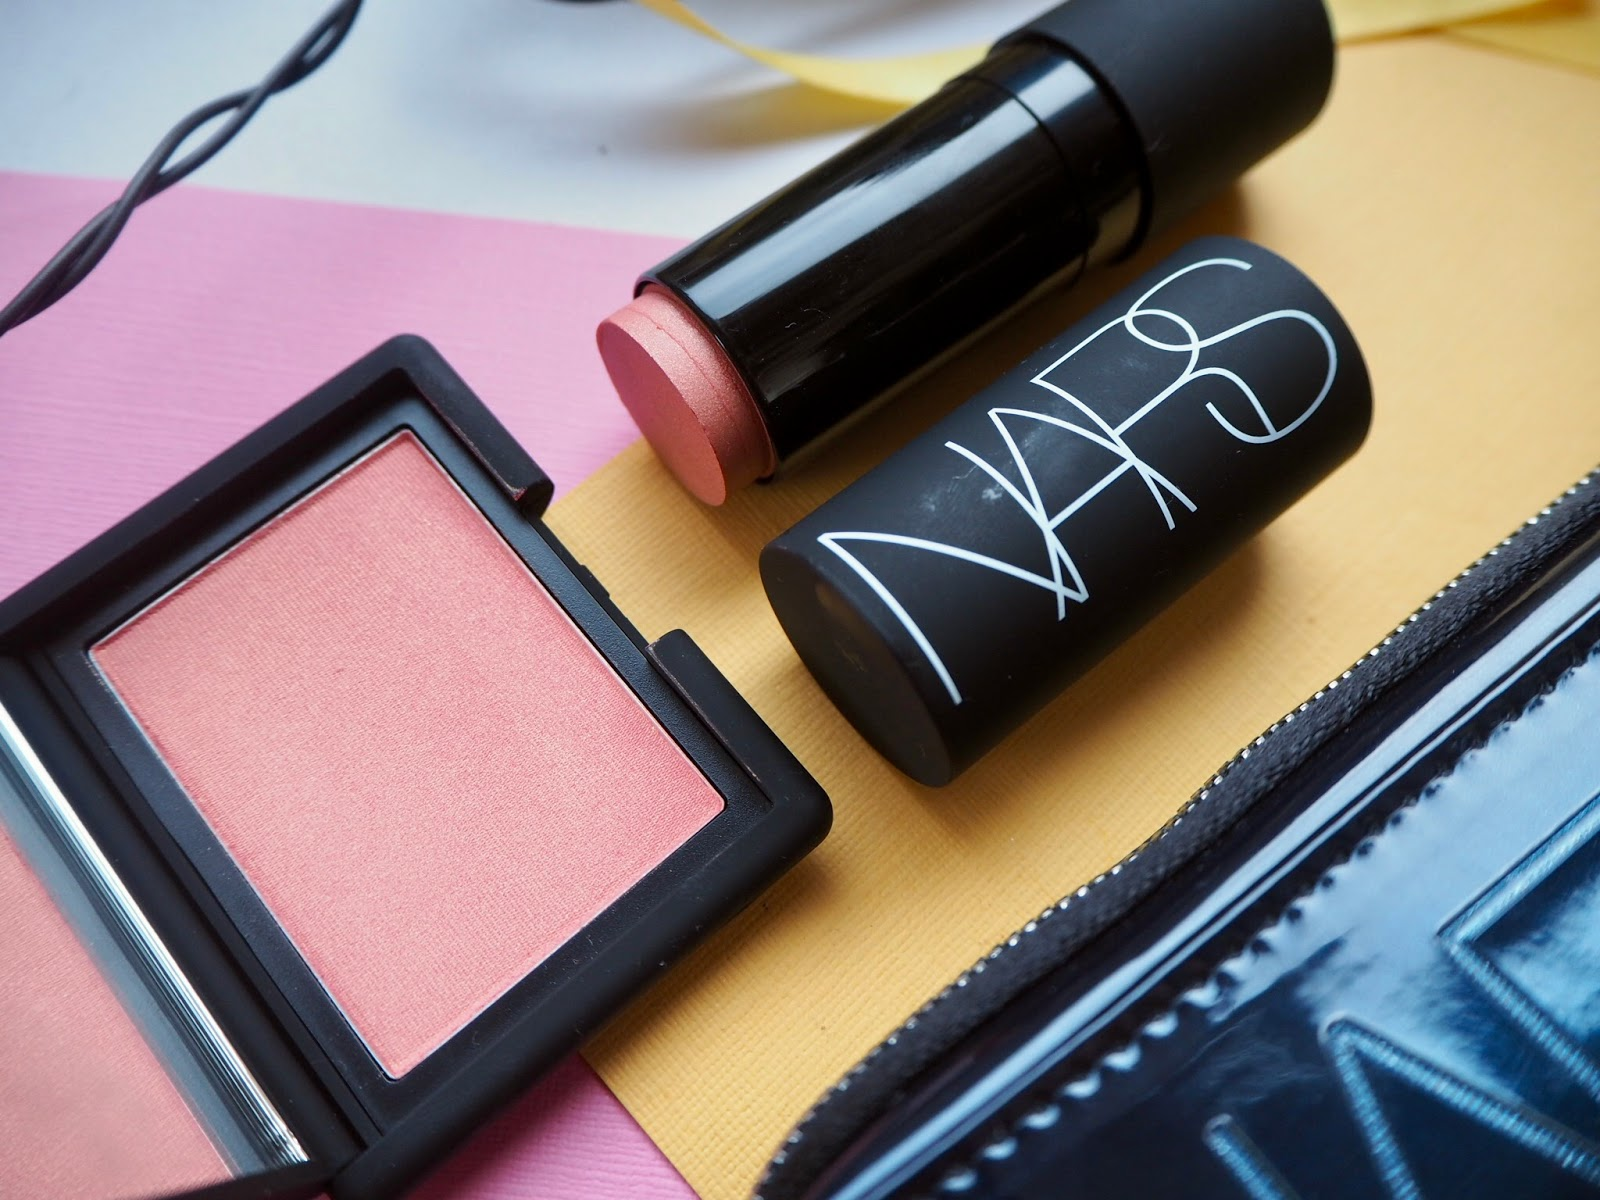 Nars Launches Orgasm X Collection Based Around It's Most Popular Shade Here's Where To Buy It